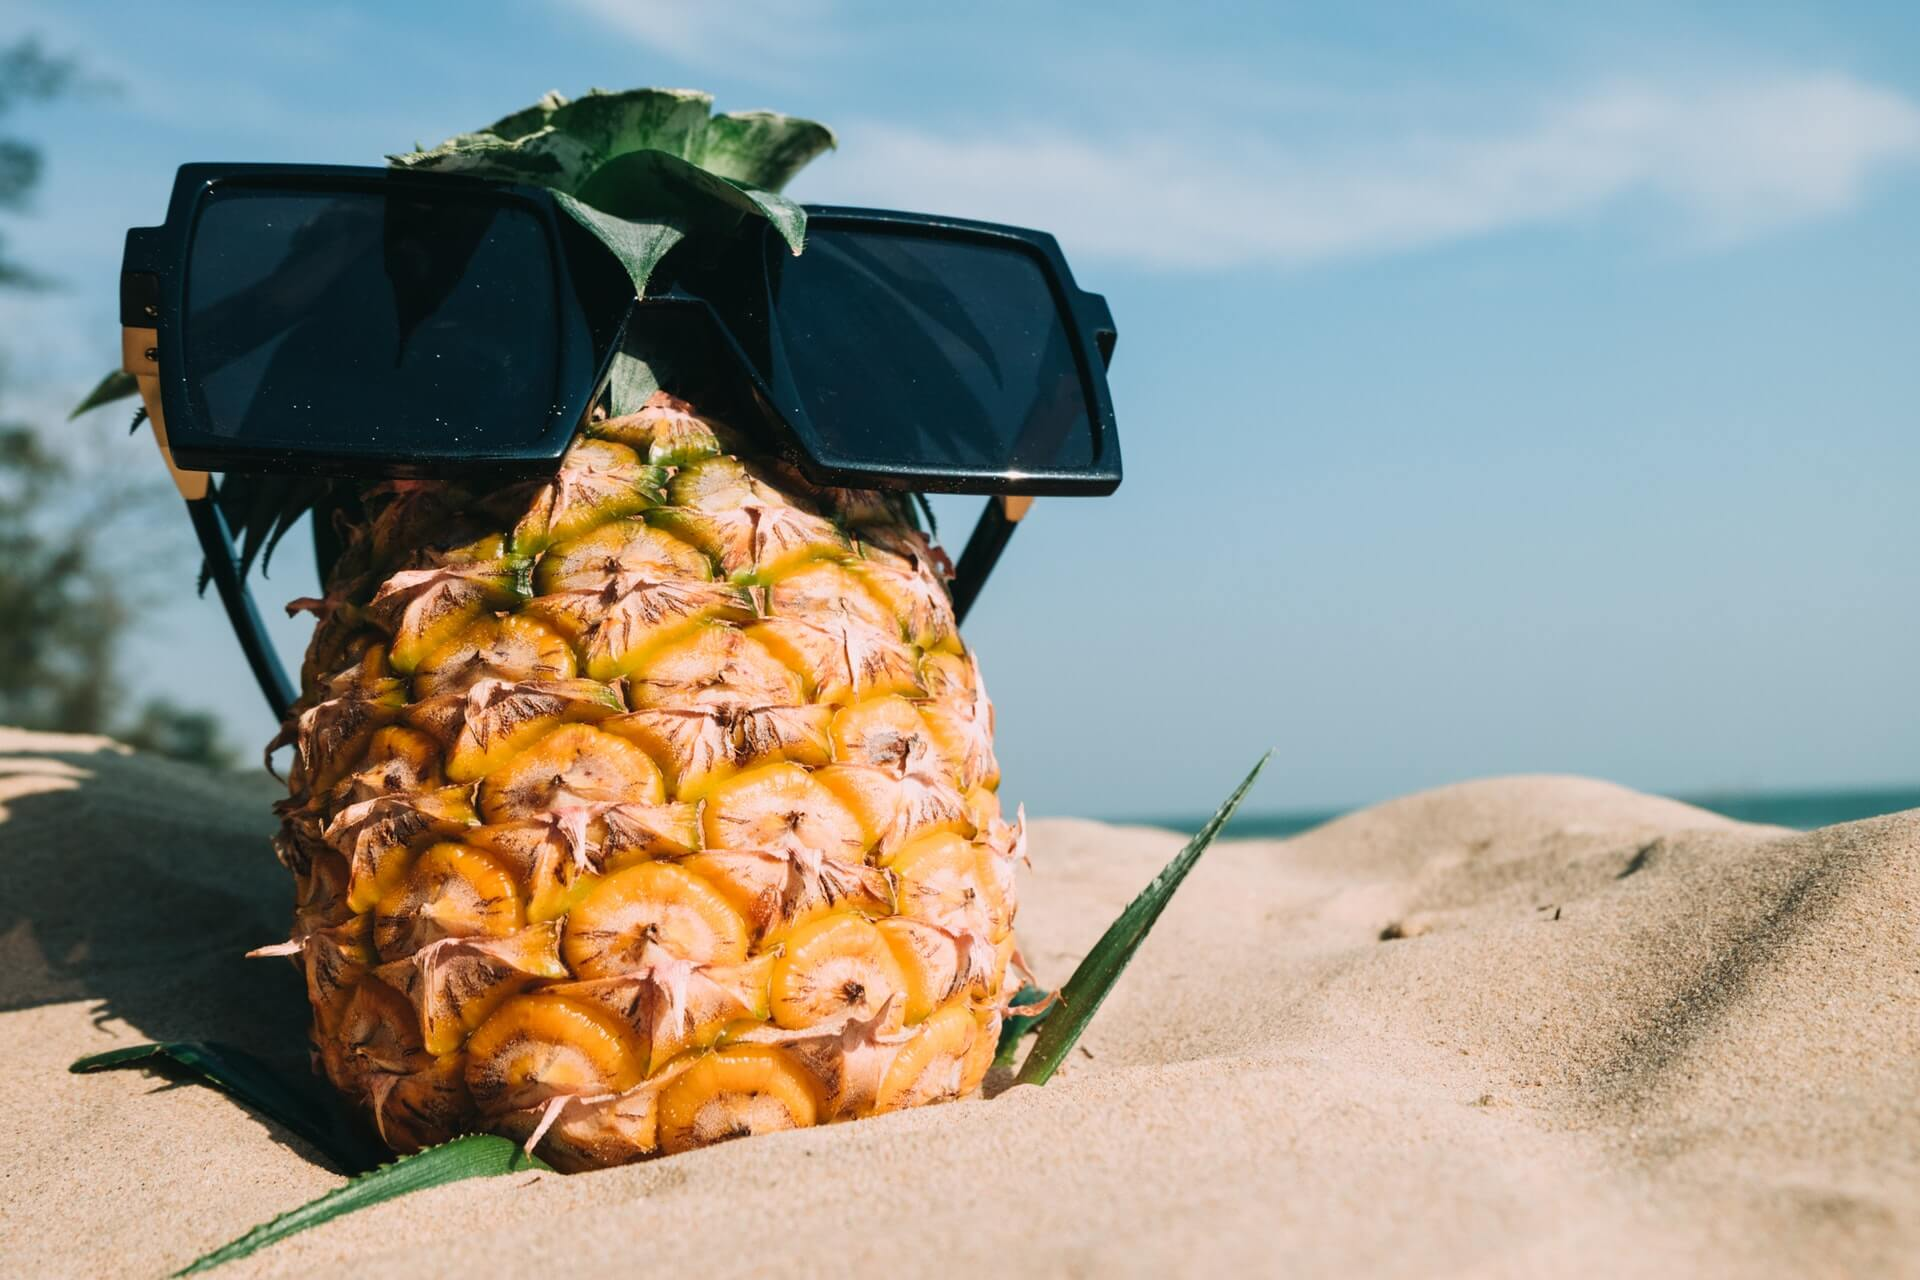 Pineapple with Sunglass Chilling Out at the Beach